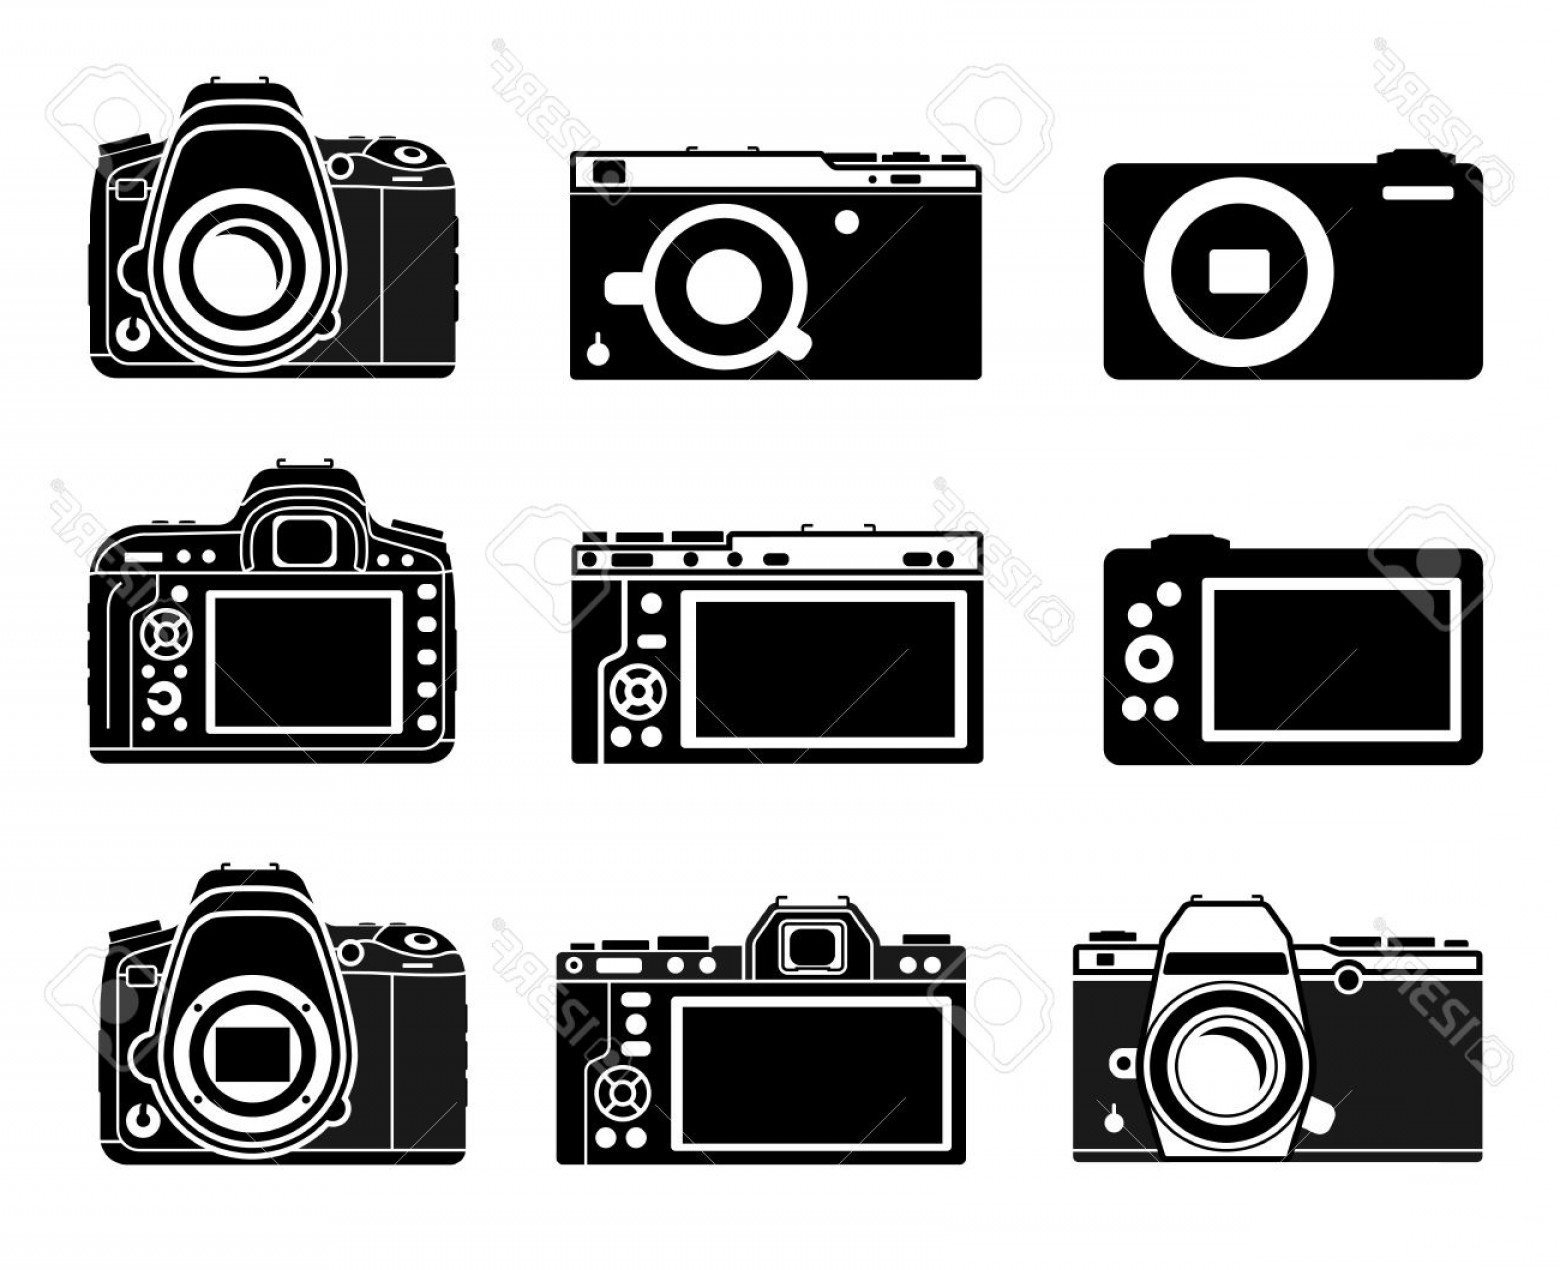 SLR Camera Vector: Photostock Vector Different Types Camera Icons Dslr Mirrorless Small Illustration Set